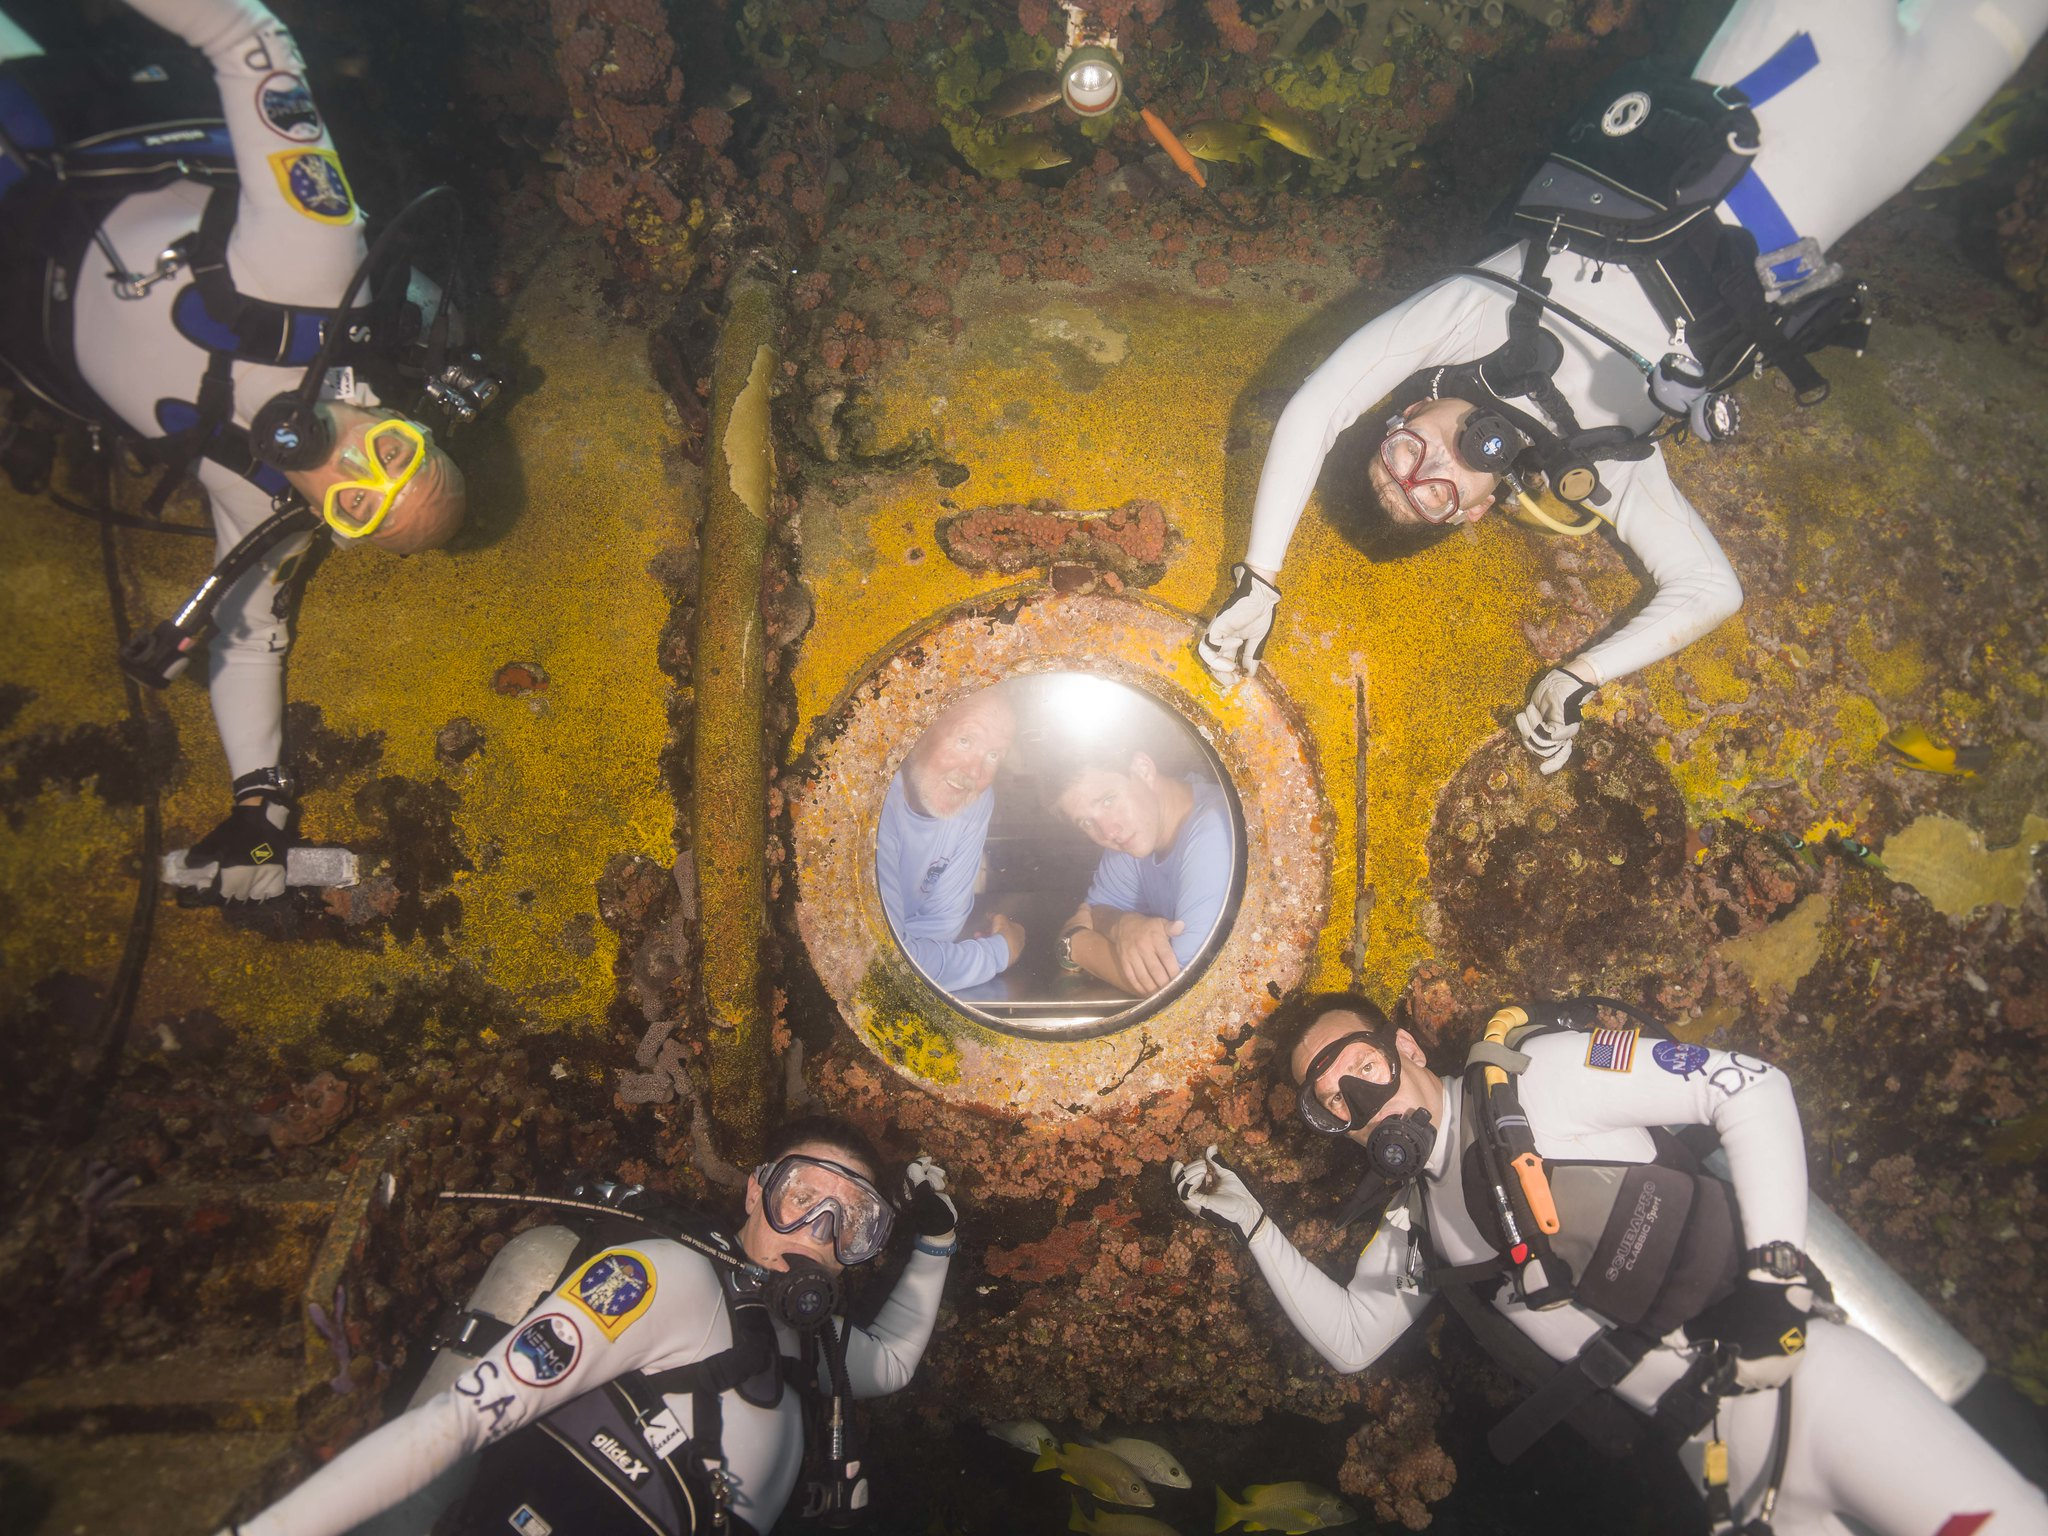 「NEEMO 20」のクルー (Photo courtesy of NASA)